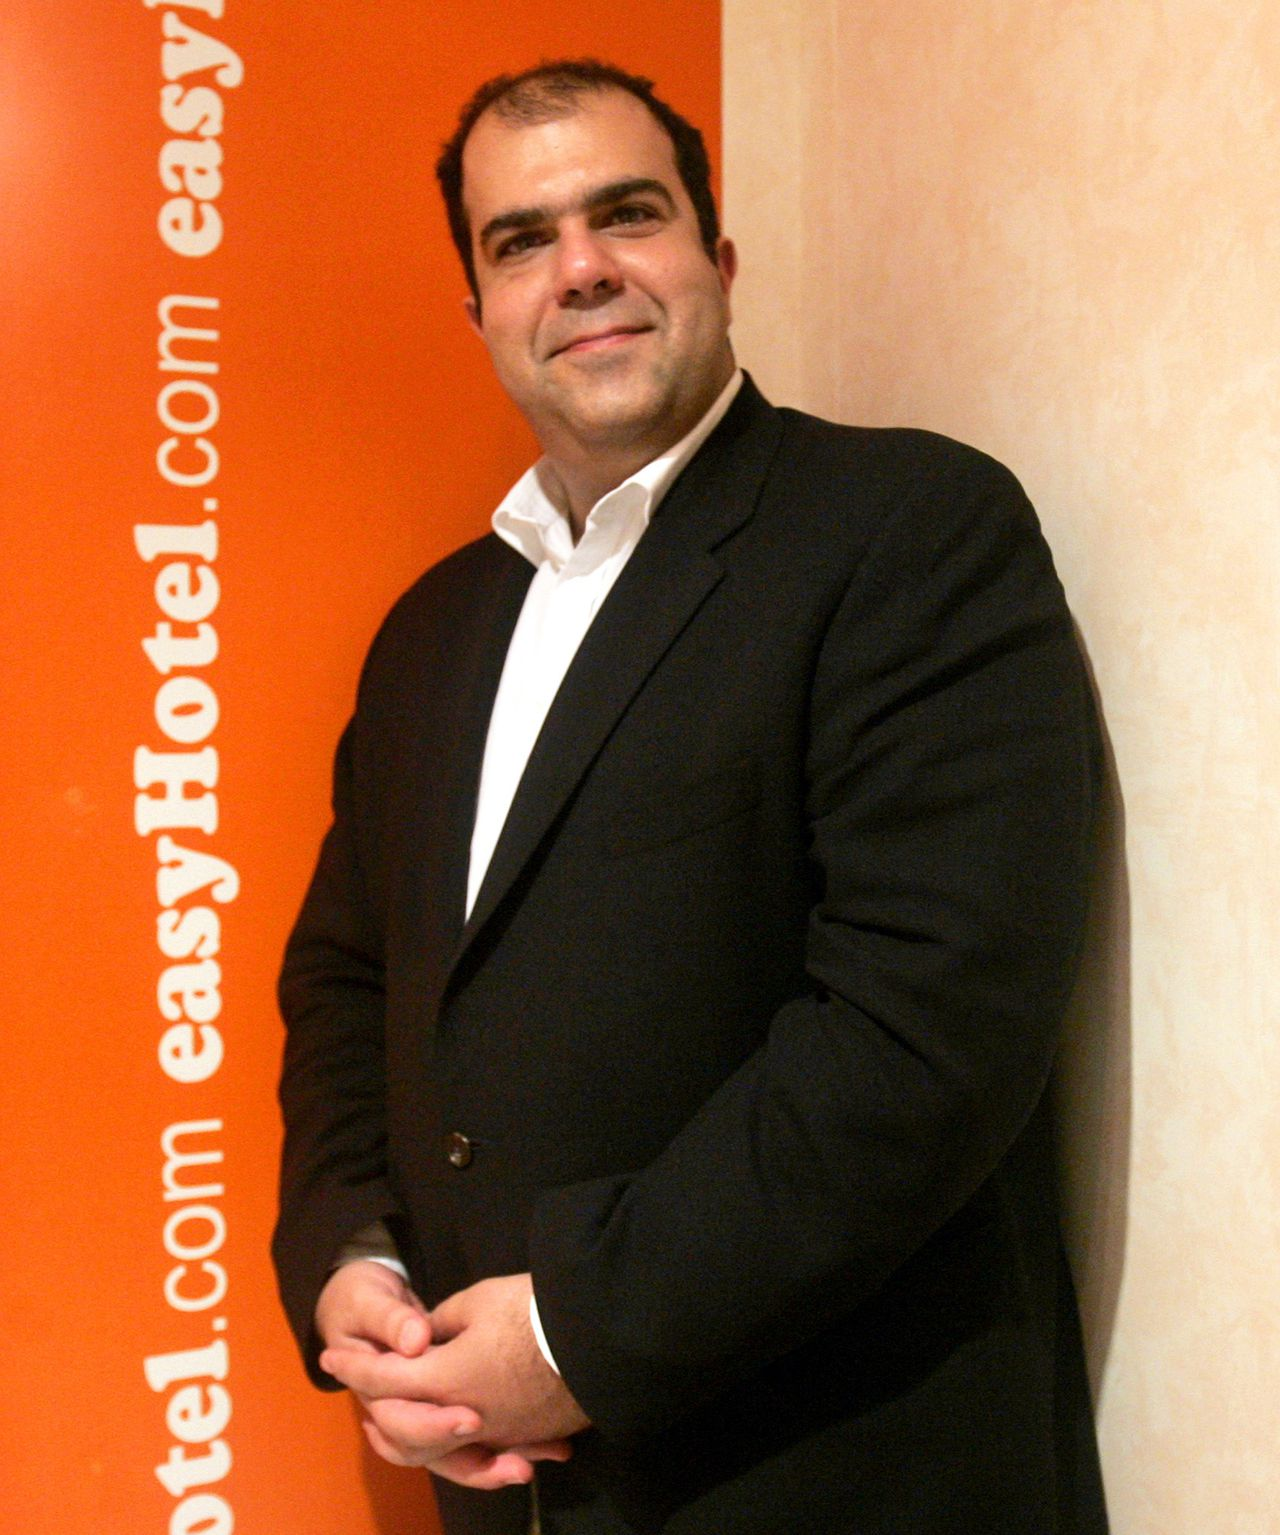 Stelios, de 'Easy'-man ** EMBARGOED NOT FOR PUBLICATION BEFORE BEFORE 23:00 GMT FRIDAY JUNE 16 2006 FILE ** EasyGroup Chairman Stelios Haji-Ioannou poses for photographs at his company offices in London, in this Friday Oct. 7, 2005 file photo. Stelios Haji-Ioannou has received a Knighthood in Britian's Queen Elizabeth II's Birthday Honours List for services to entrepreneurship. (AP Photo/Matt Dunham)